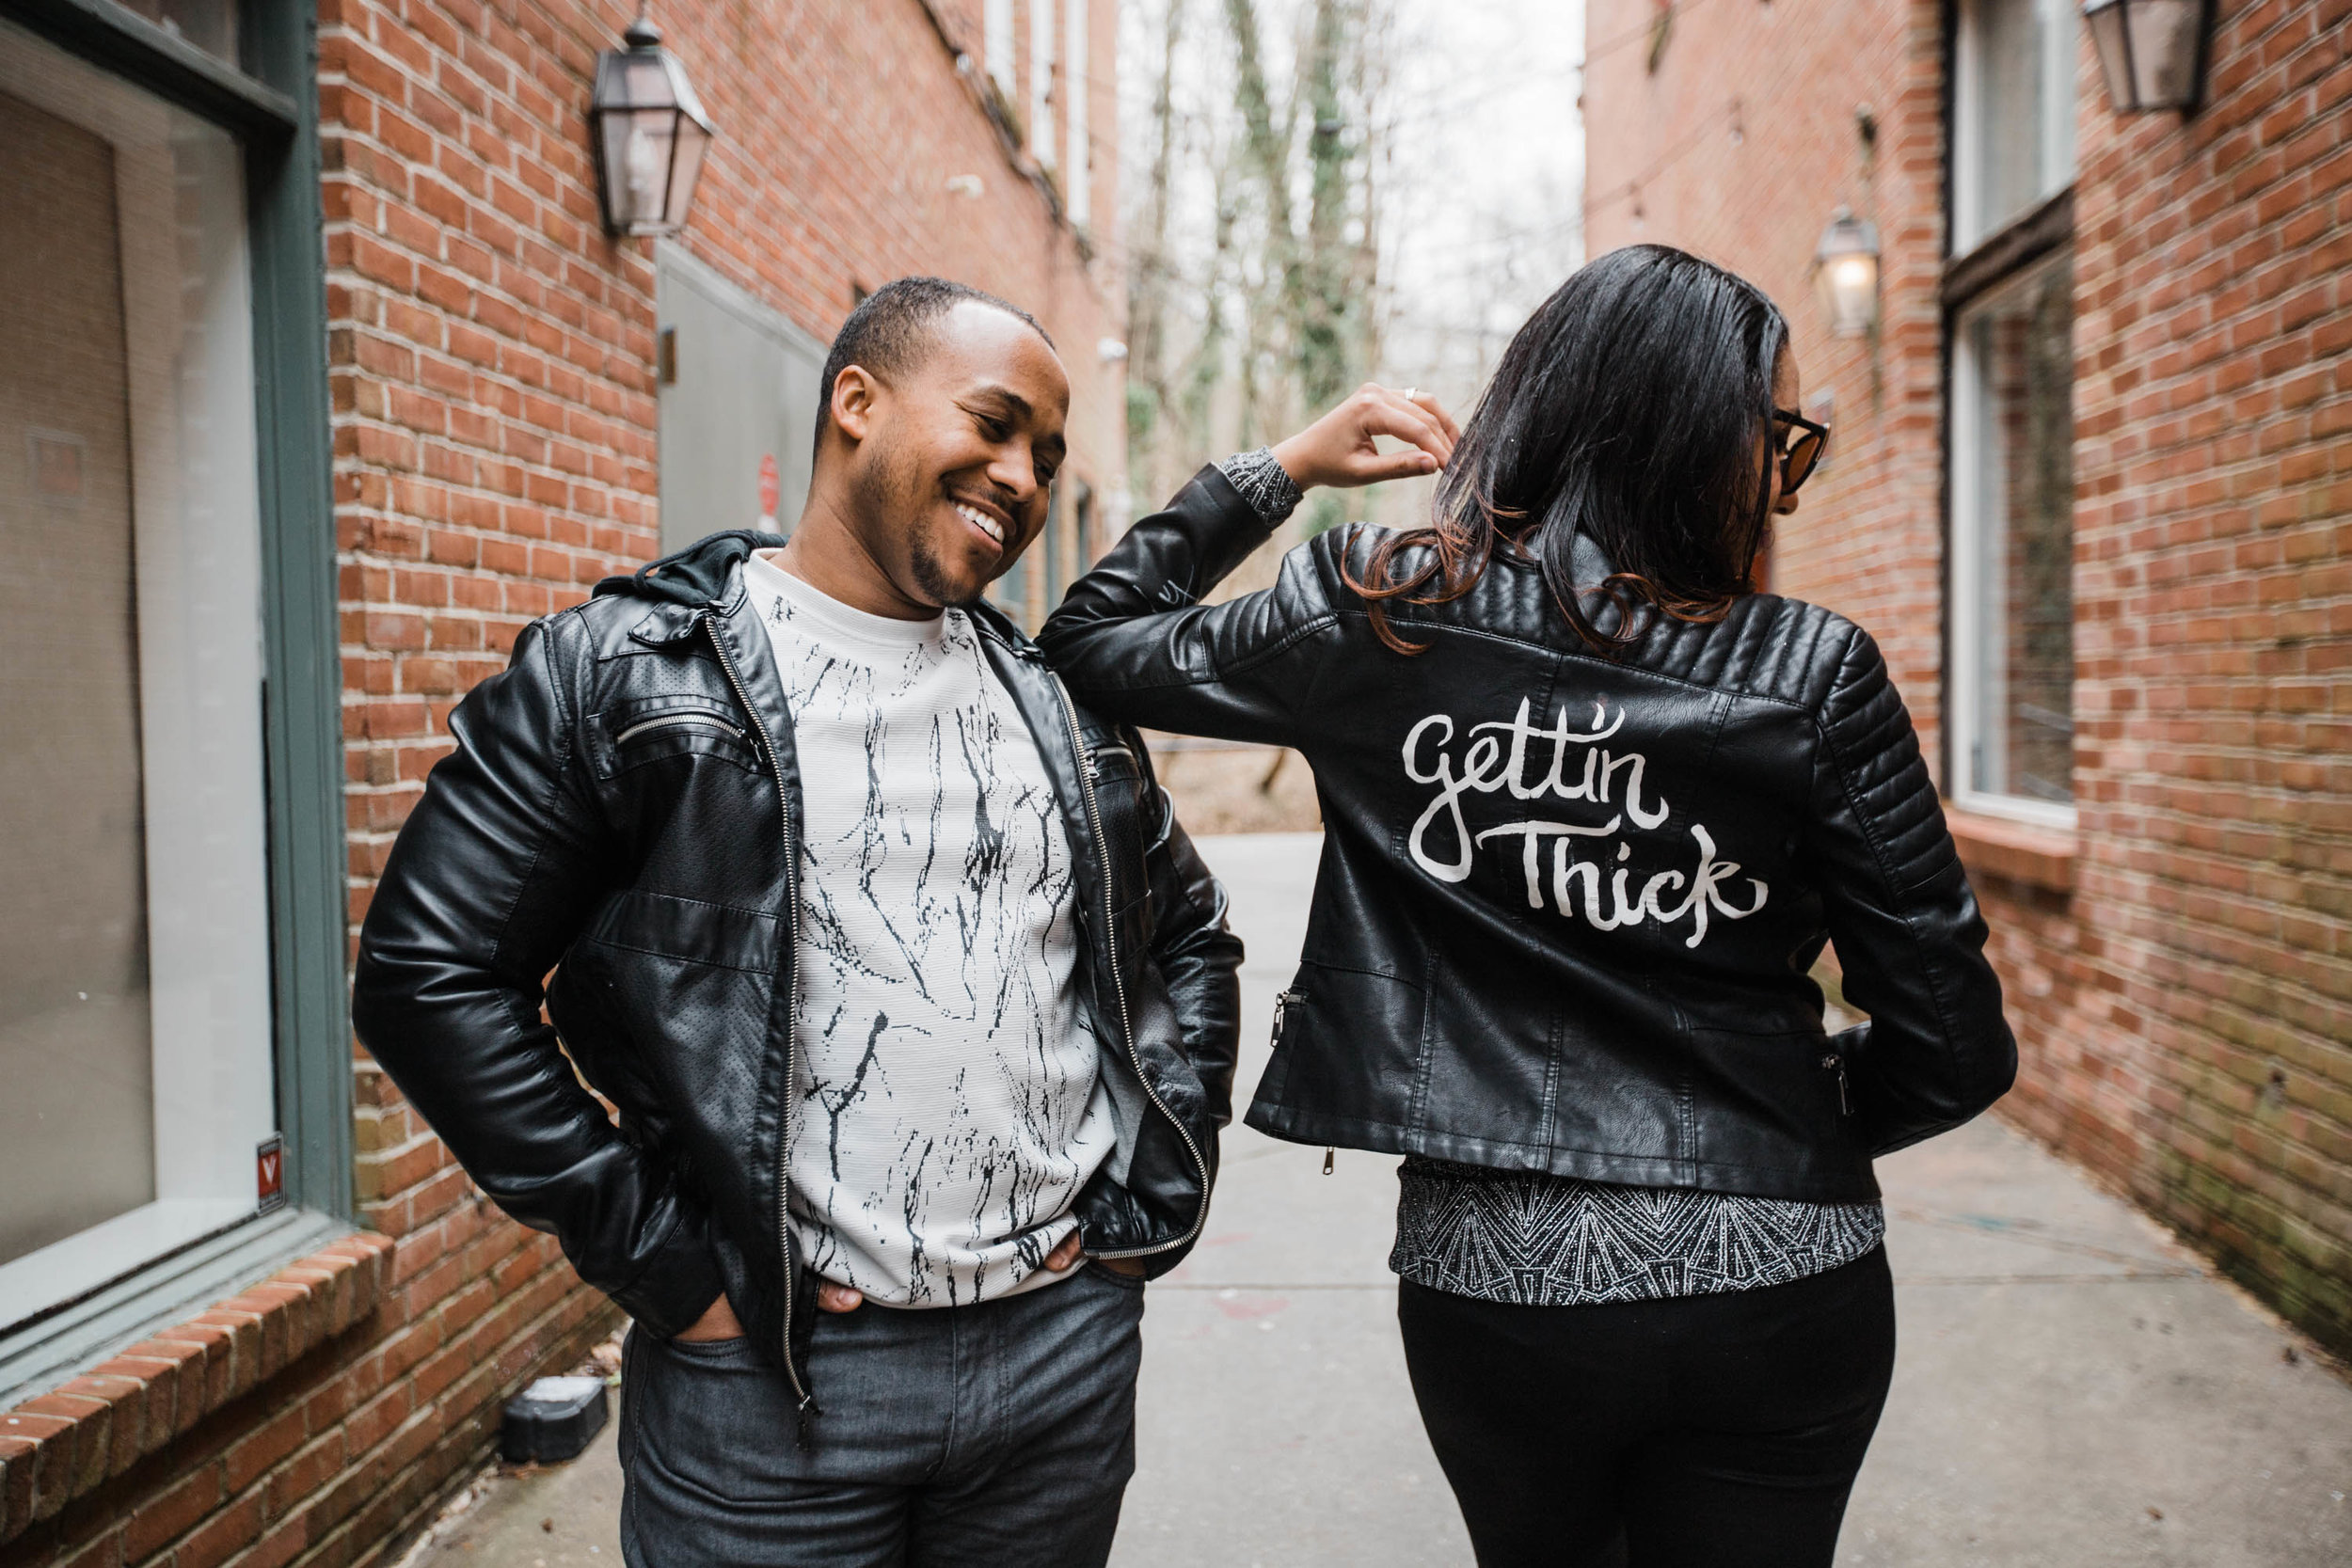 Hand lettered Black Leather jacket Pregnancy Announcement Baltimore Maternity Photographer Megapixels Media Photography-3.jpg